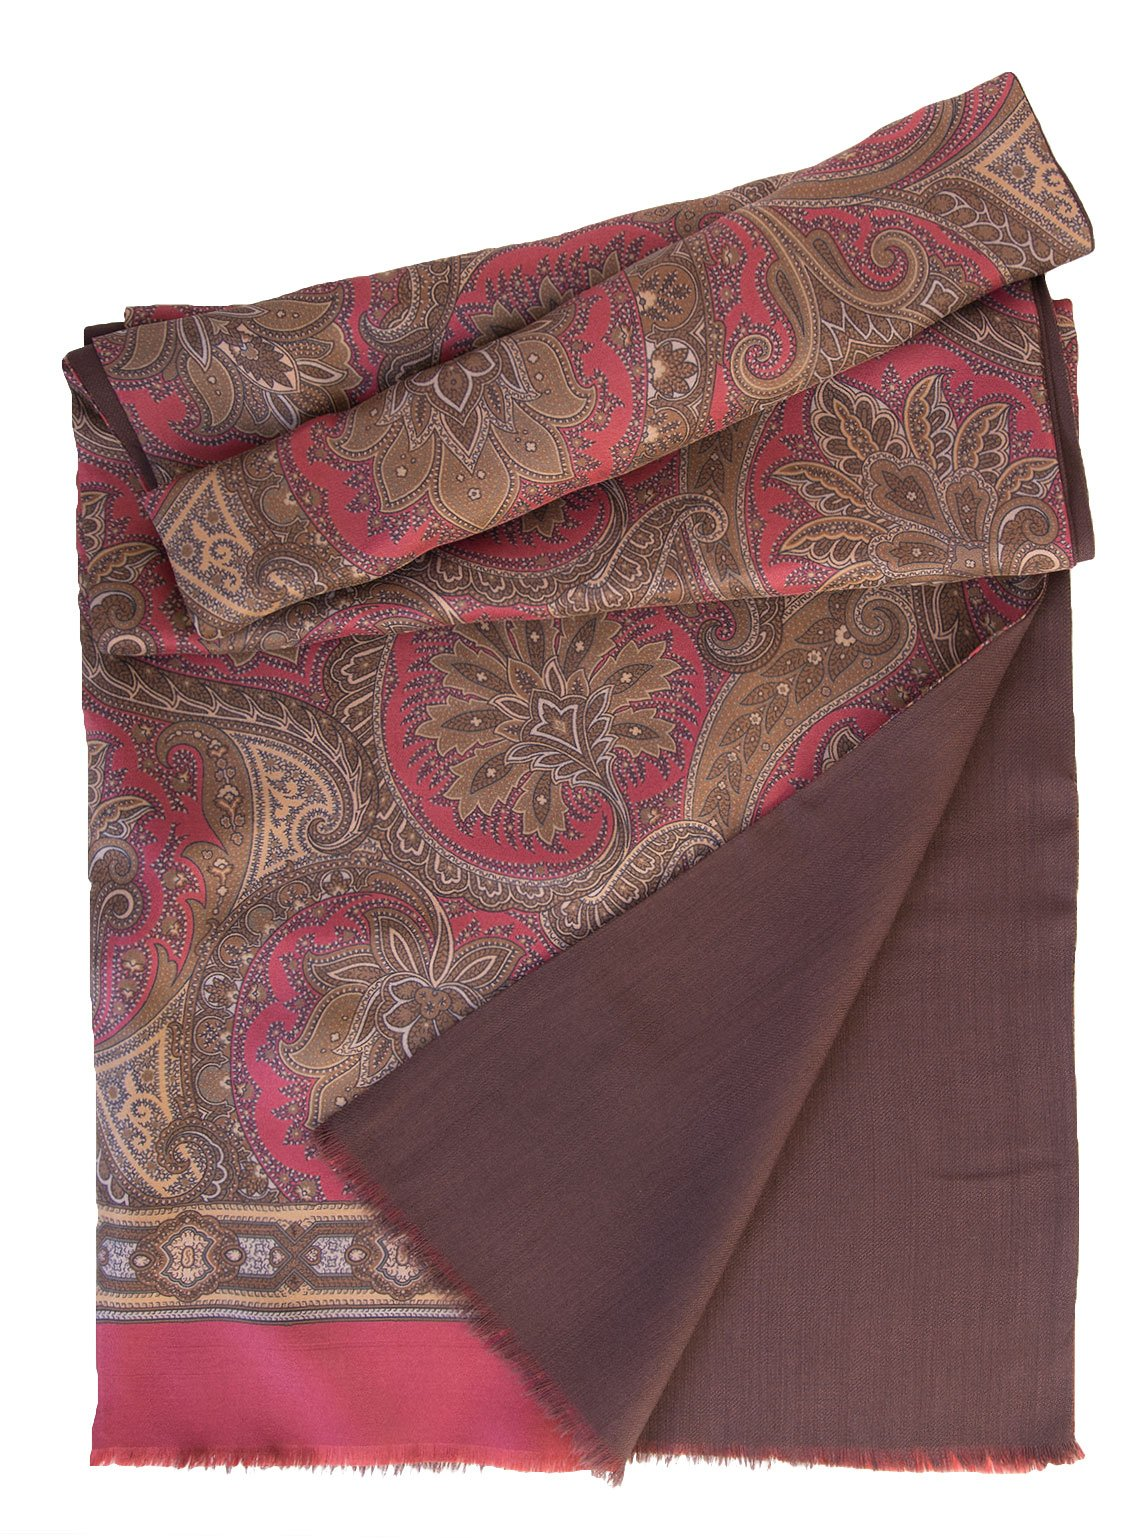 Elizabetta Men's Italian Silk Scarf - Paisley Print - Soft Wool Lined-Burgundy & Brown